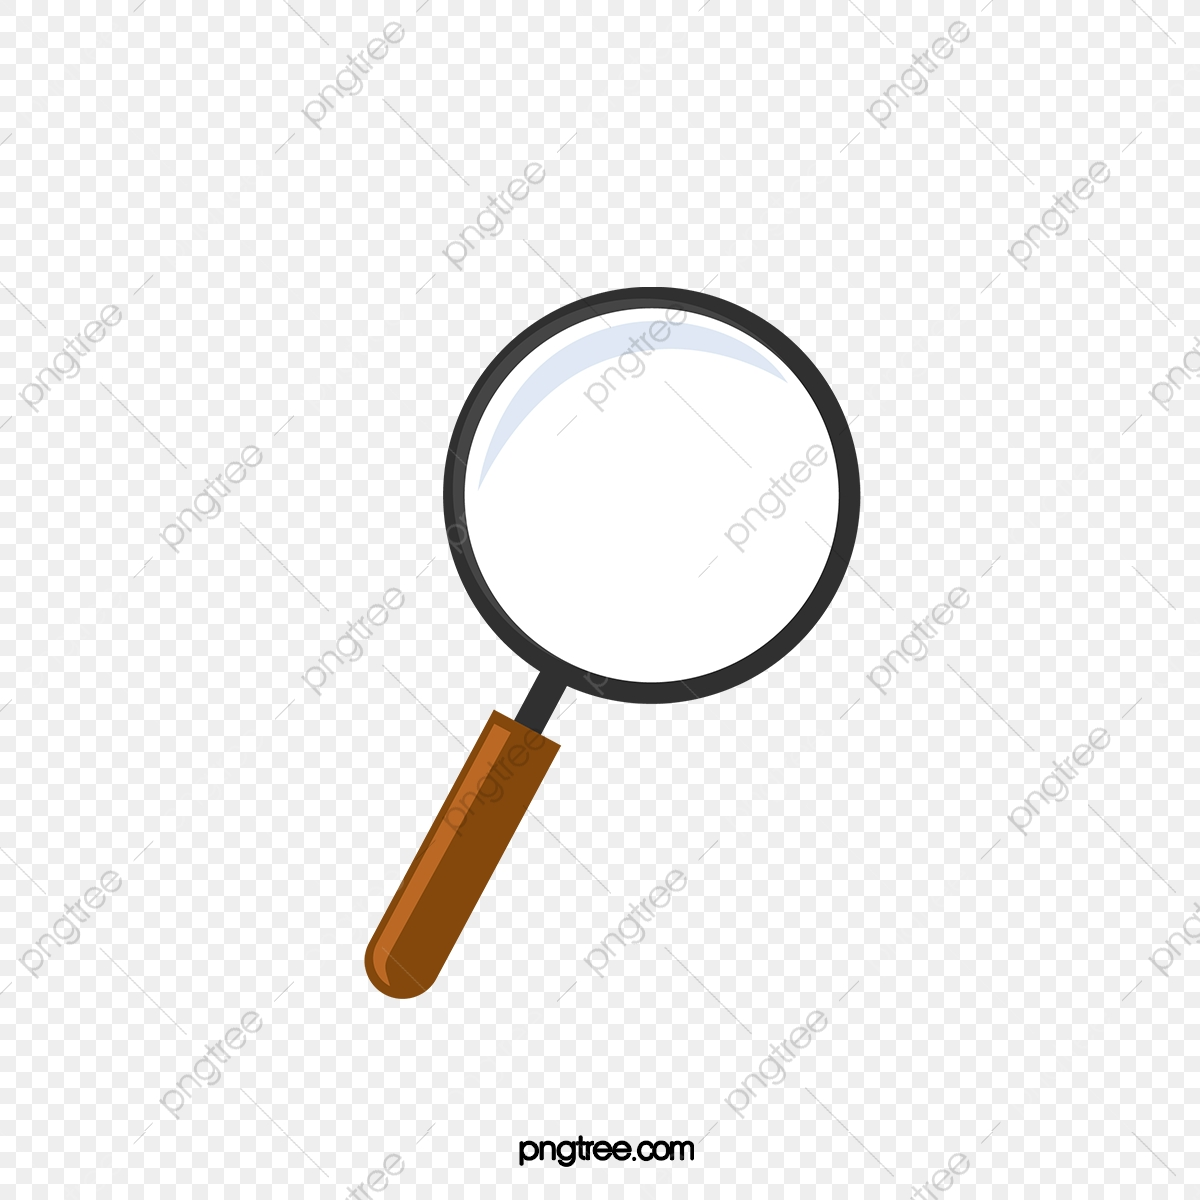 Magnifying Glass Vector Material, Magnifier, Vector.